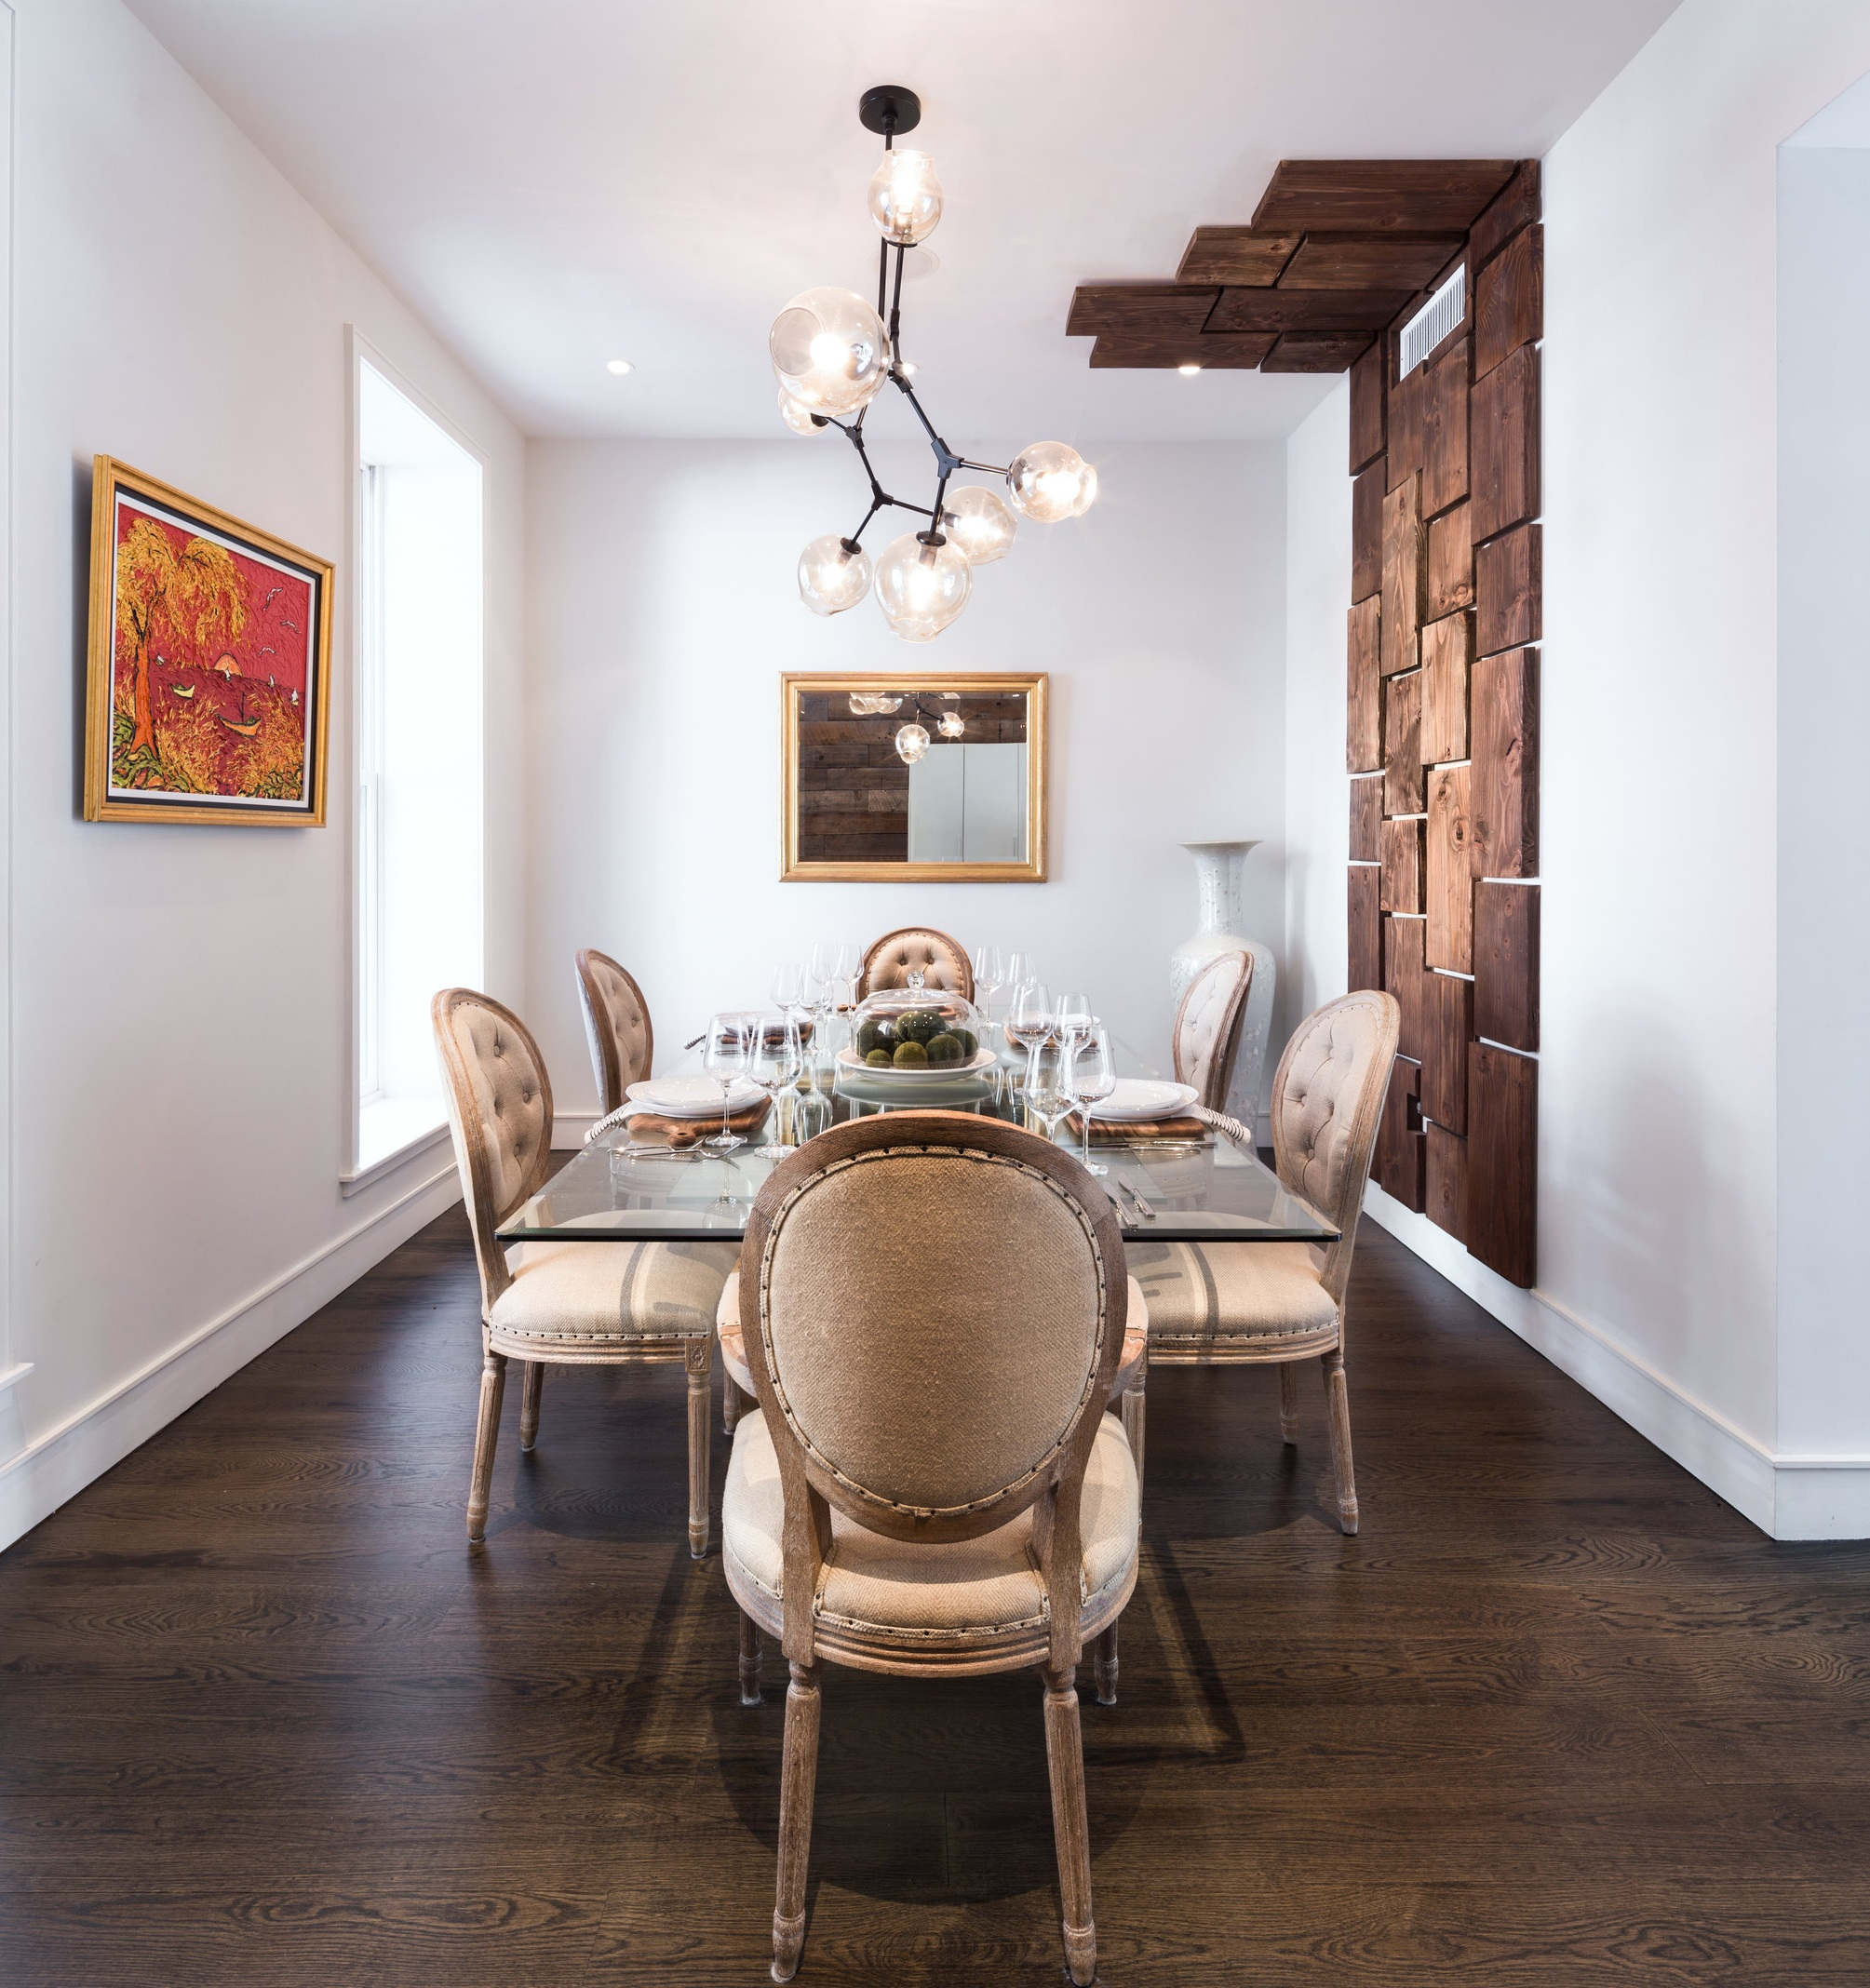 Interiors Photography - Dining Area